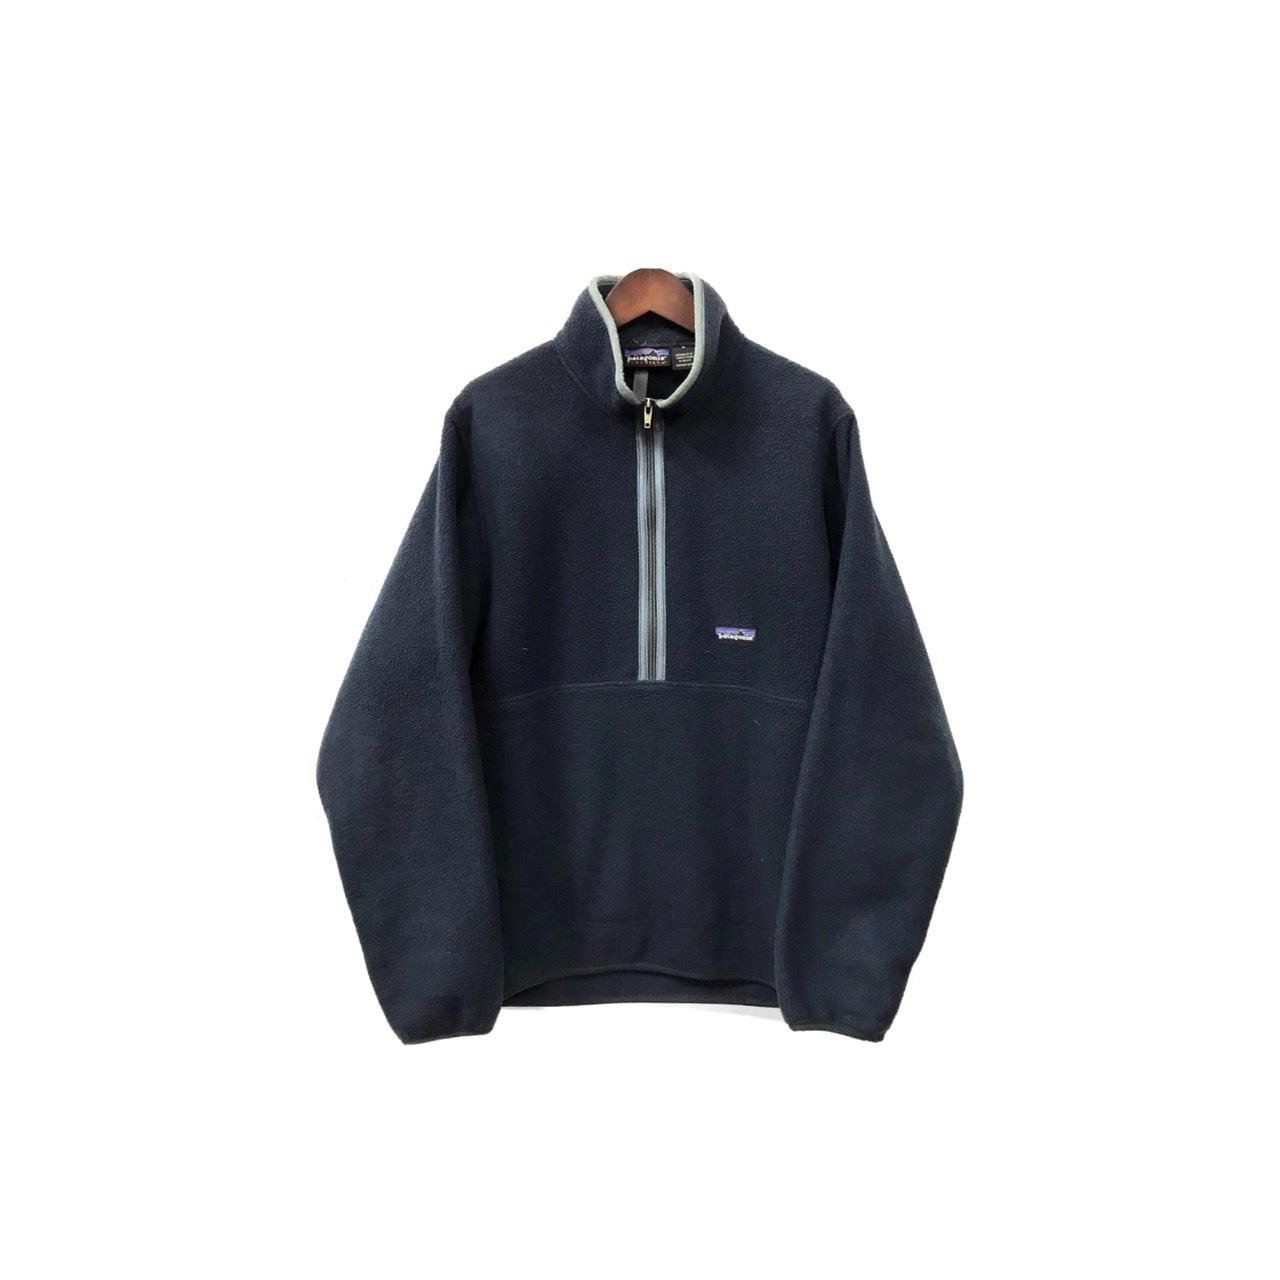 Patagonia - Half Zip Fleece Tops (size - S) ¥10500+tax